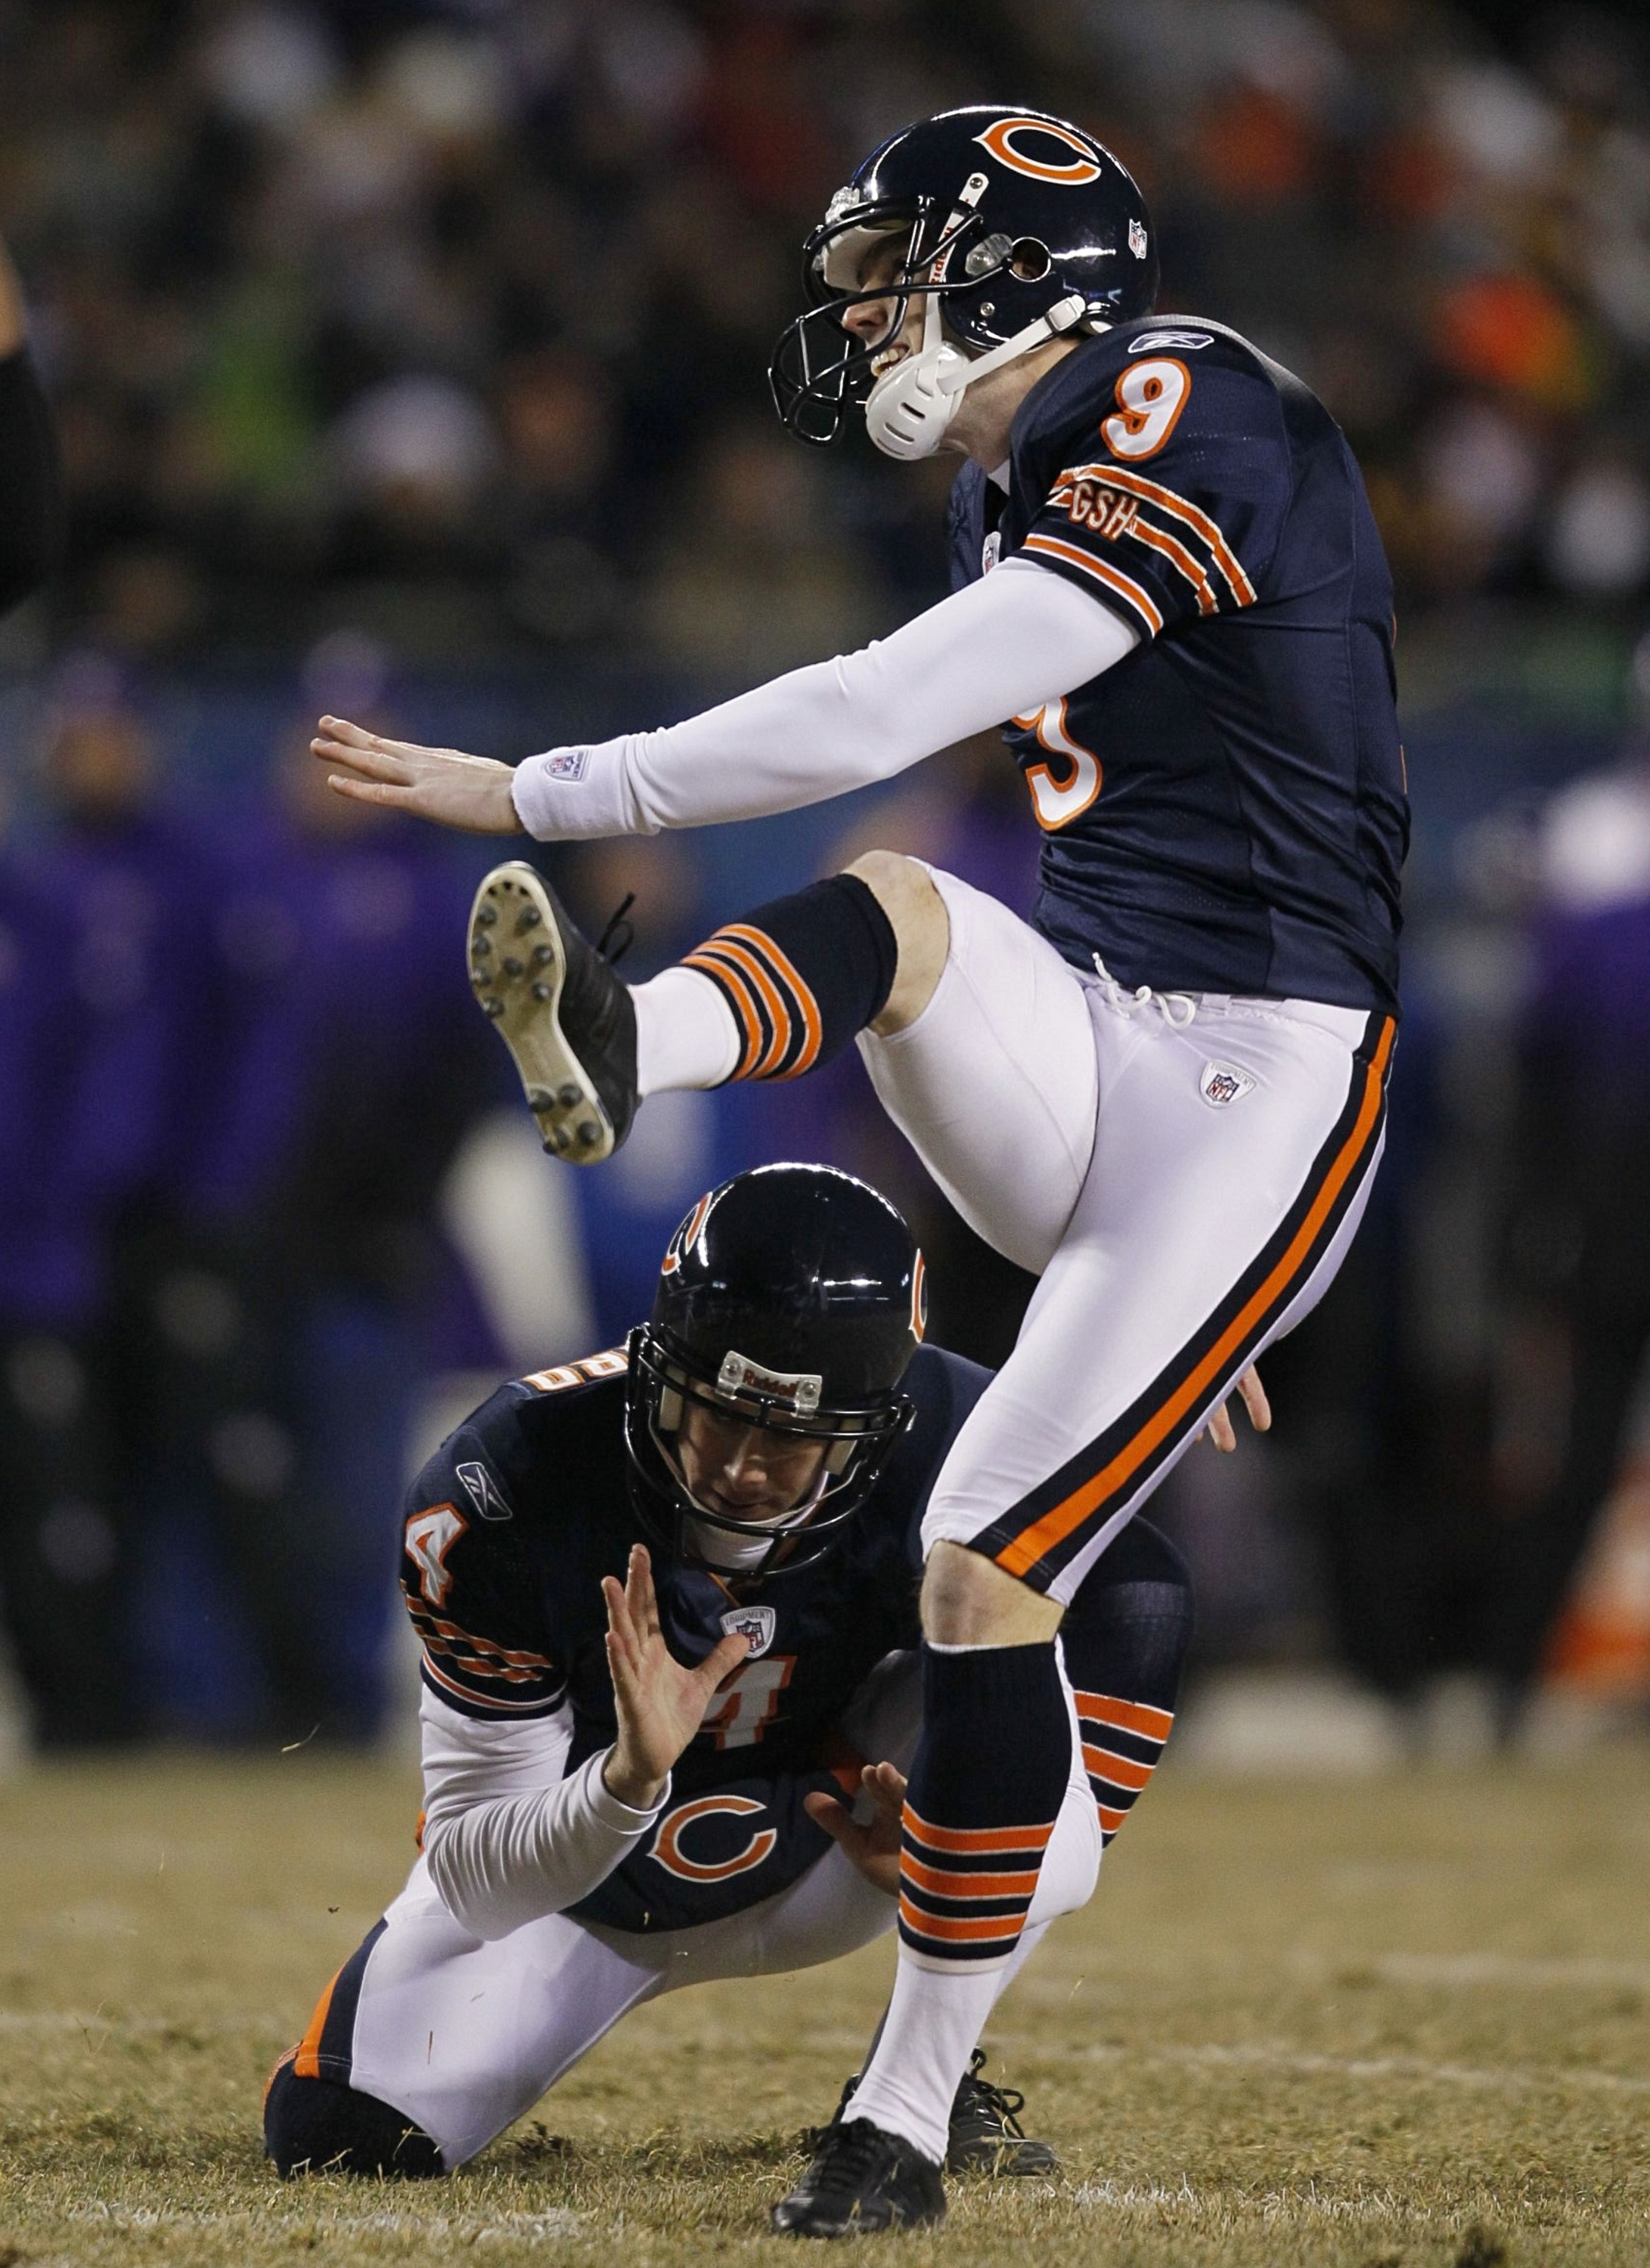 CHICAGO - DECEMBER 28:  Kicker Robbie Gould #9 of the Chicago Bears makes a field goal in the first half at Soldier Field against the Minnesota Vikings on December 28, 2009 in Chicago, Illinois. (Photo by Jonathan Daniel/Getty Images)